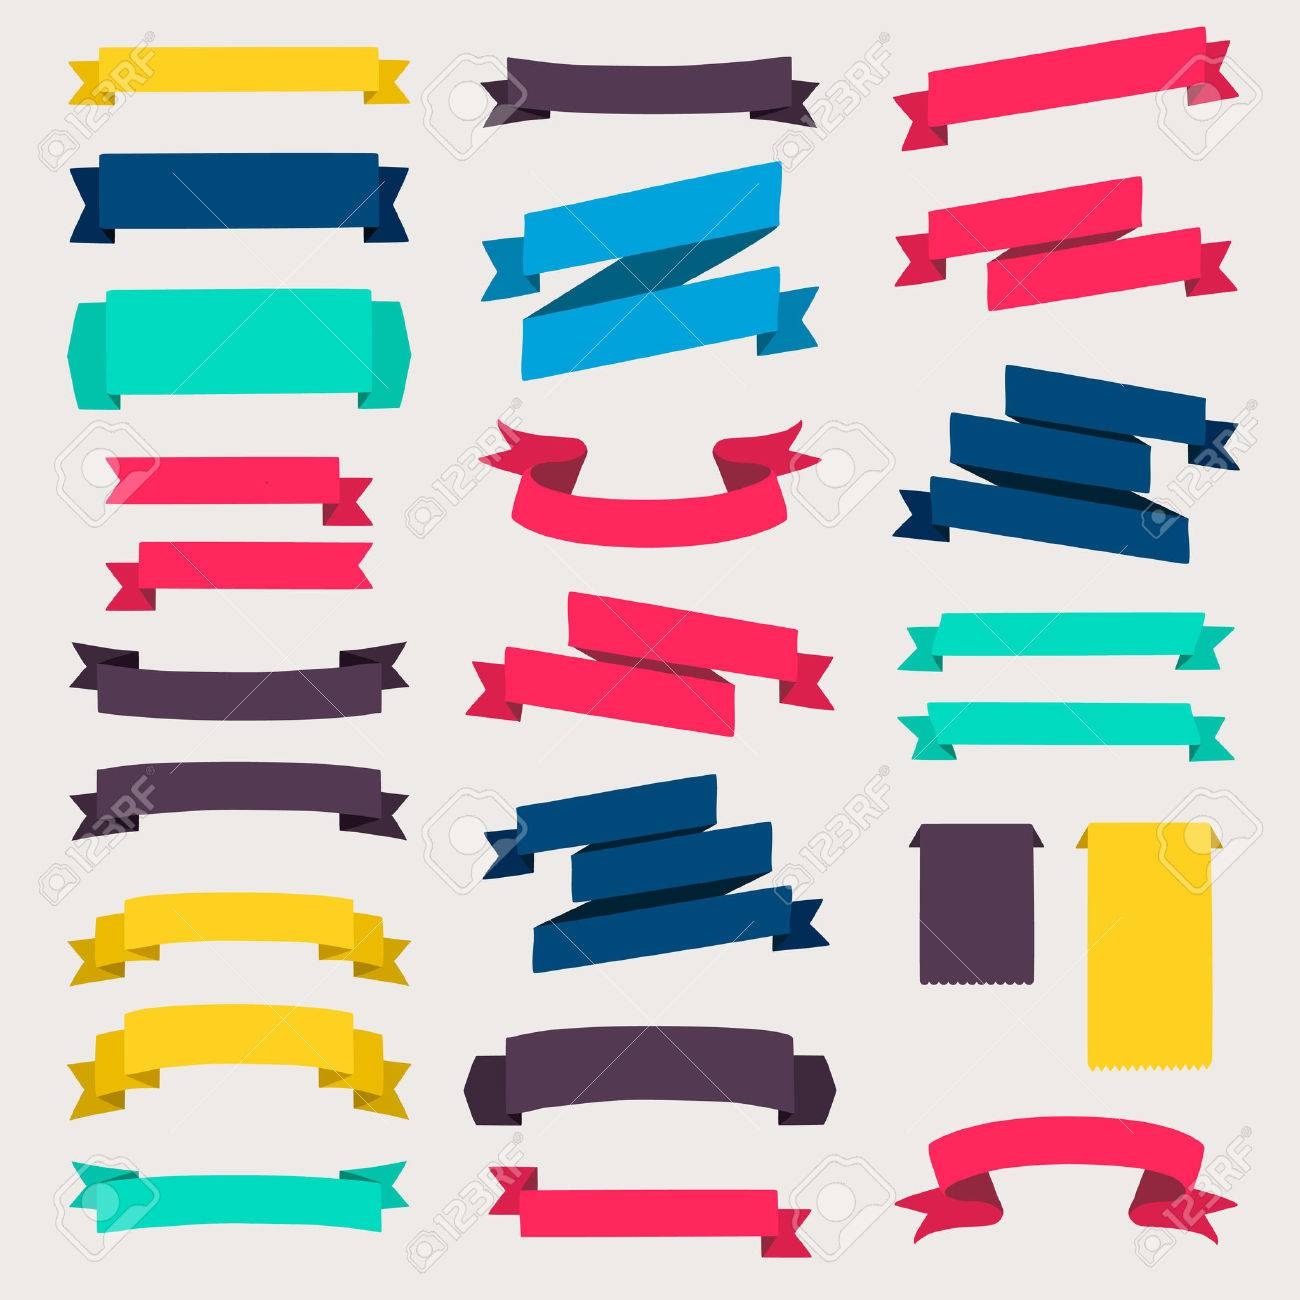 Set of design elements banners ribbons. - 36766546